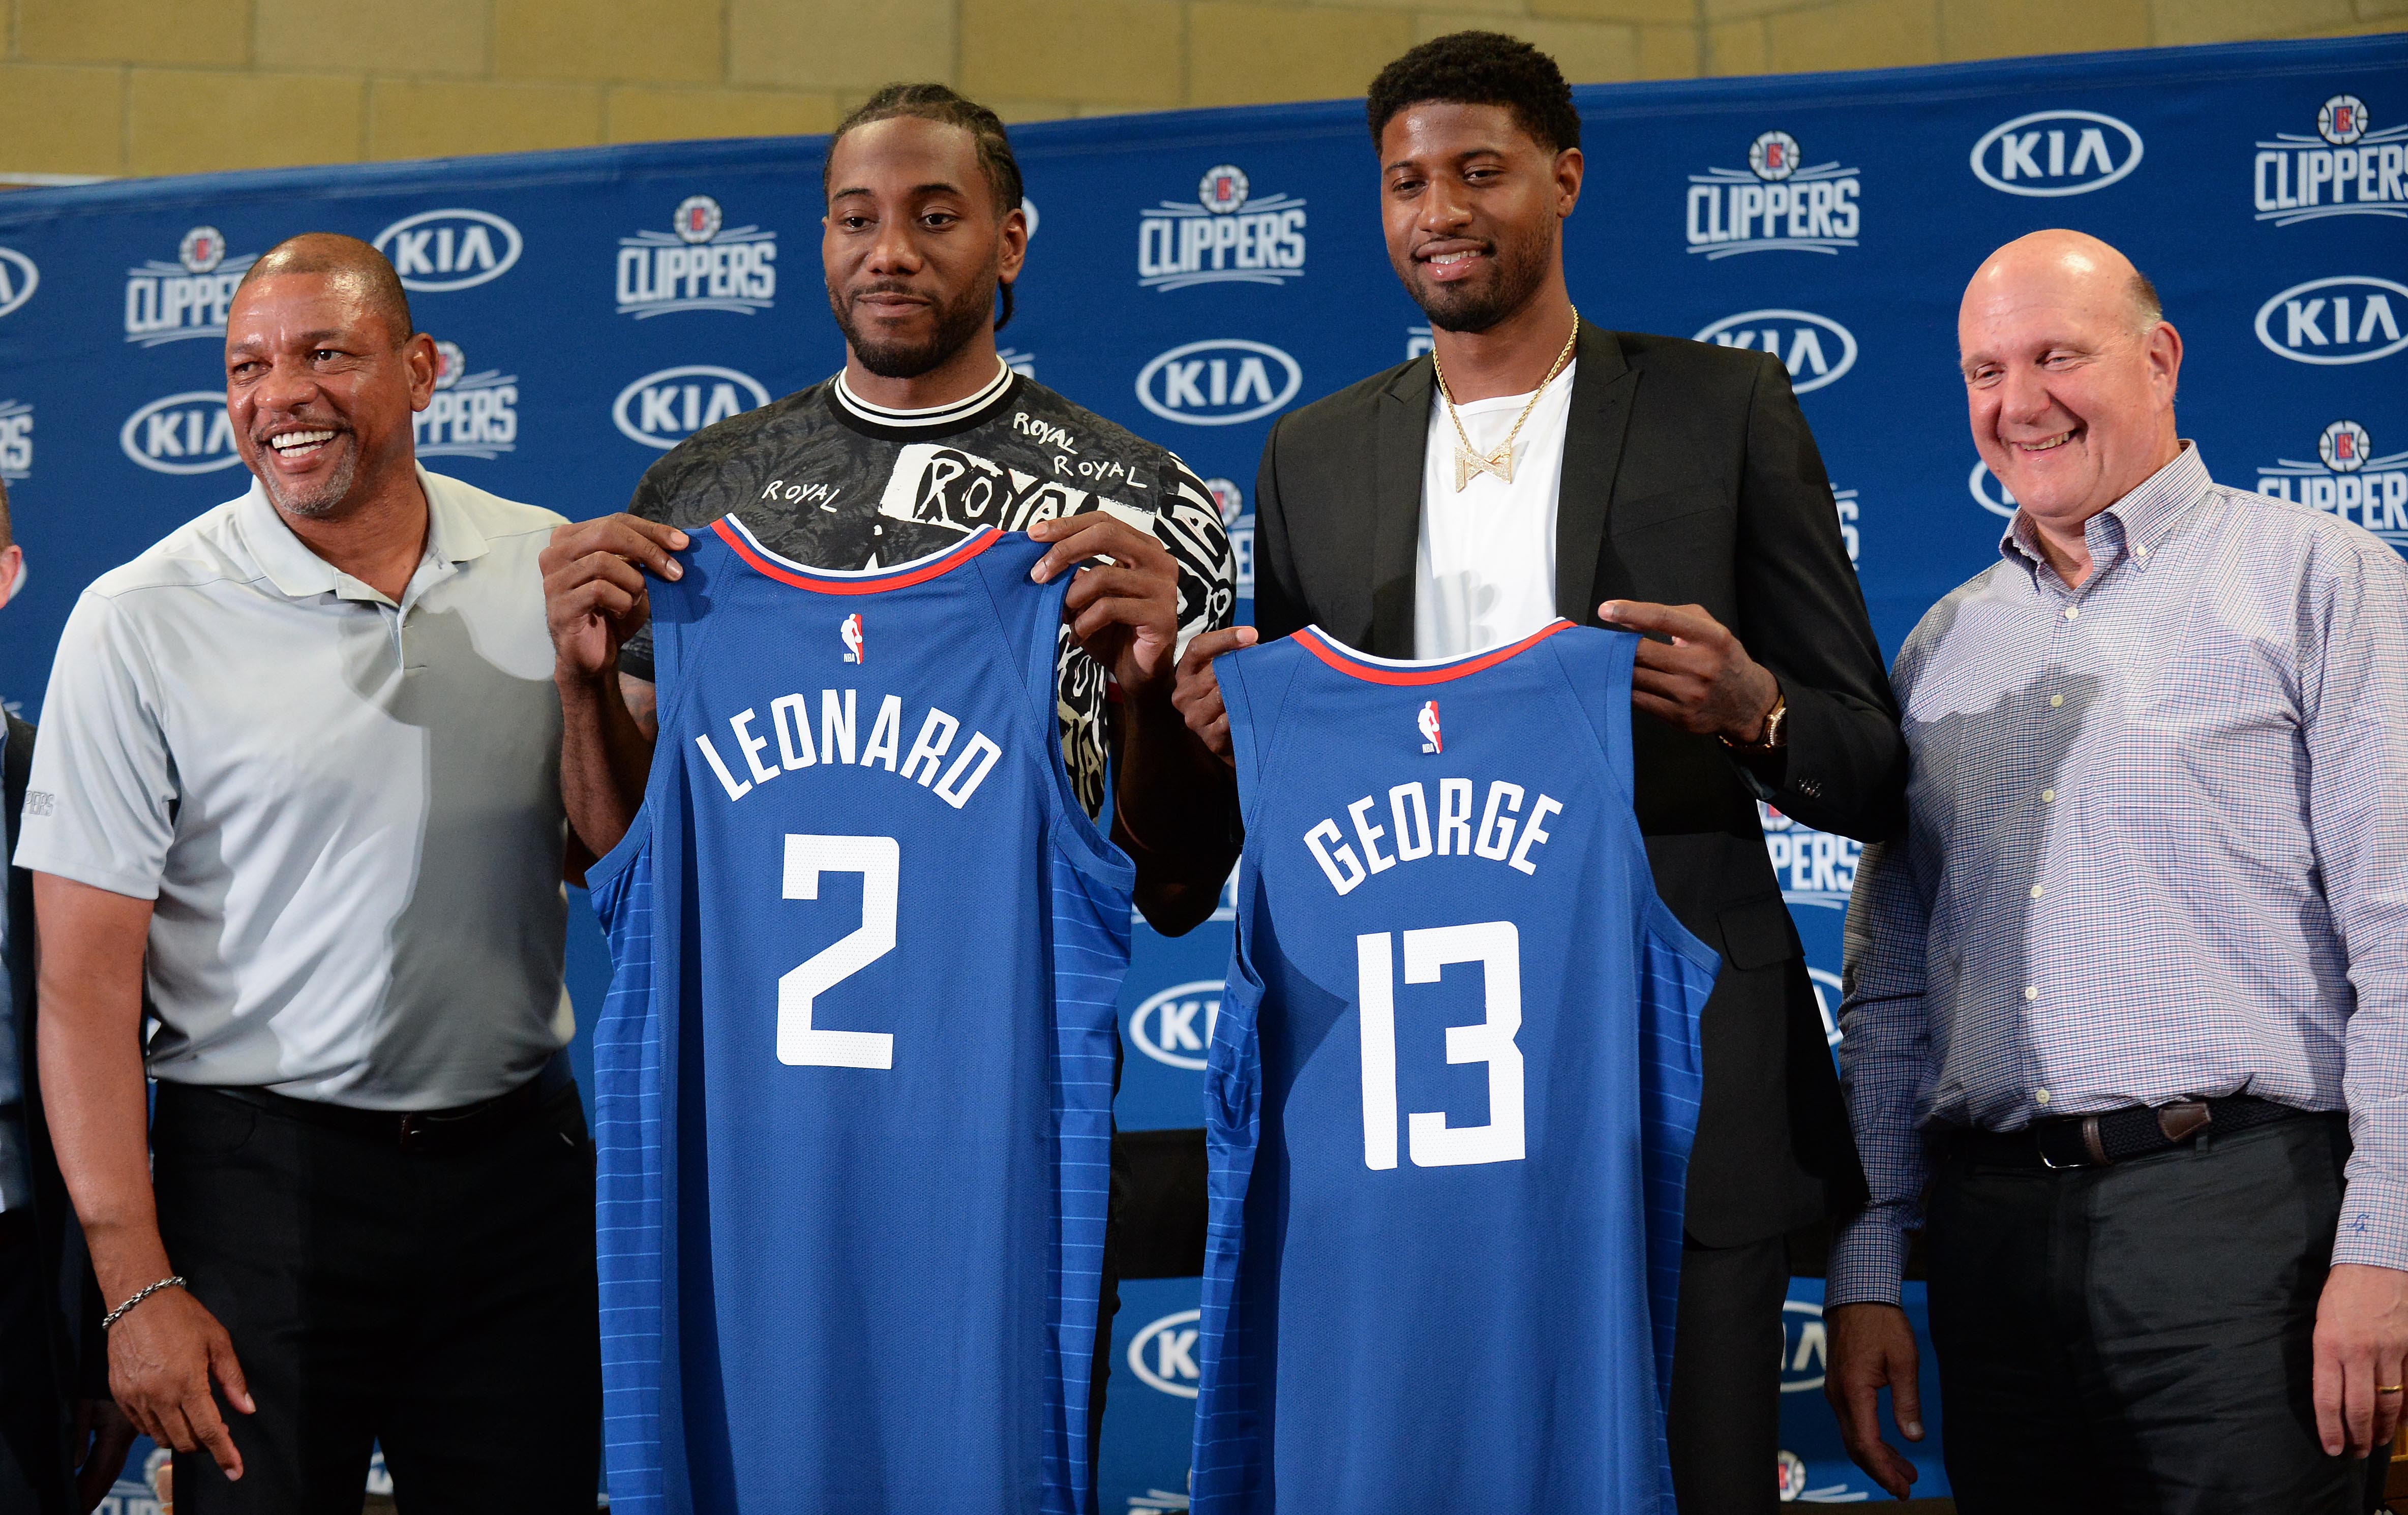 Clippers' history: After years of ineptitude, franchise finally getting its day in the sun